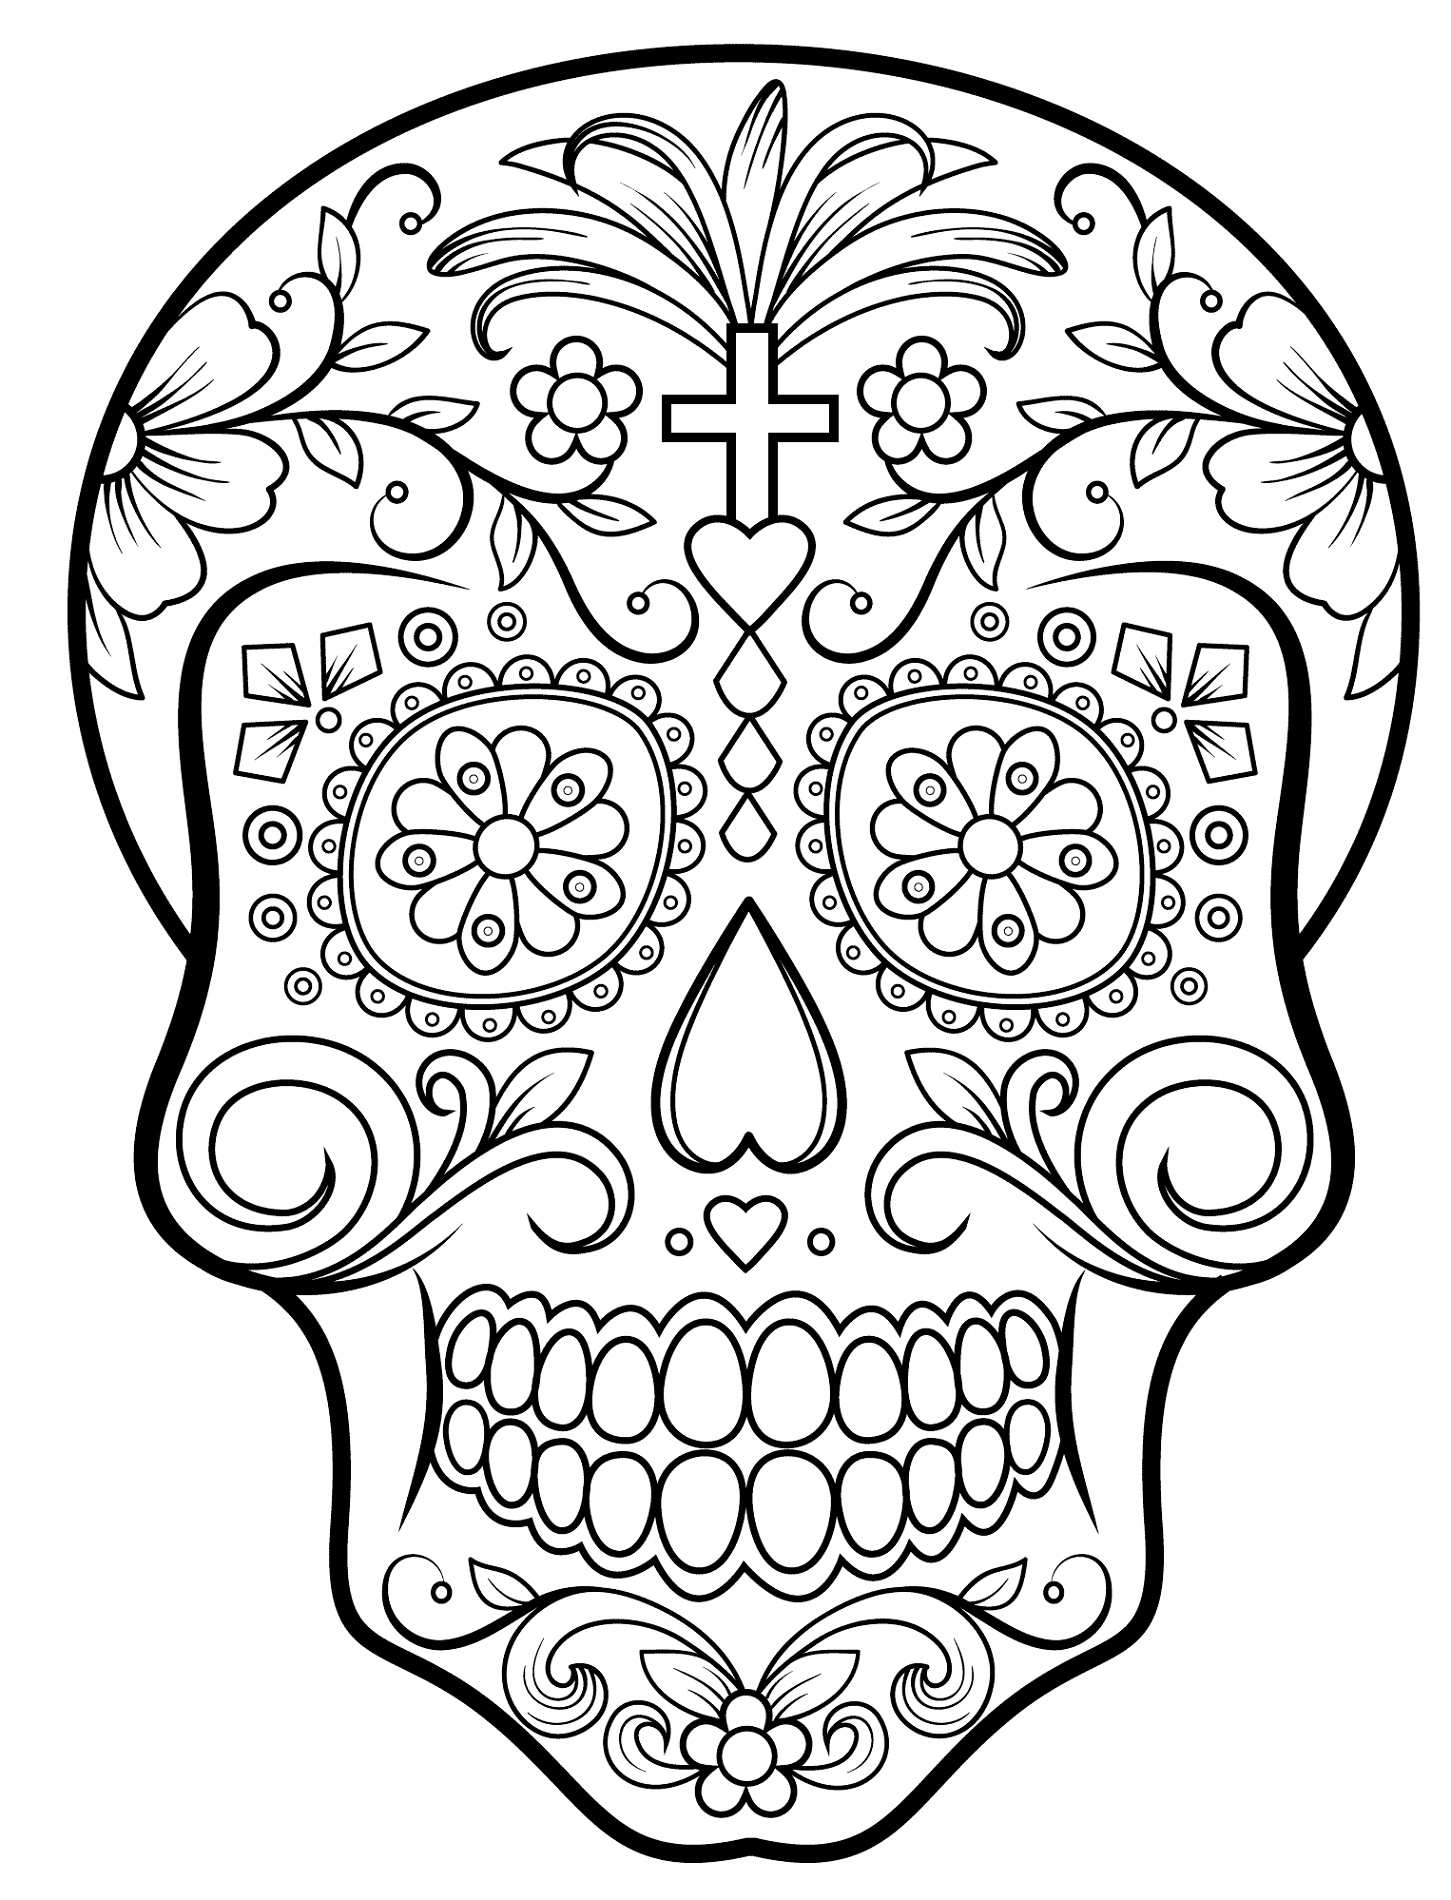 Skull Coloring Pages Free